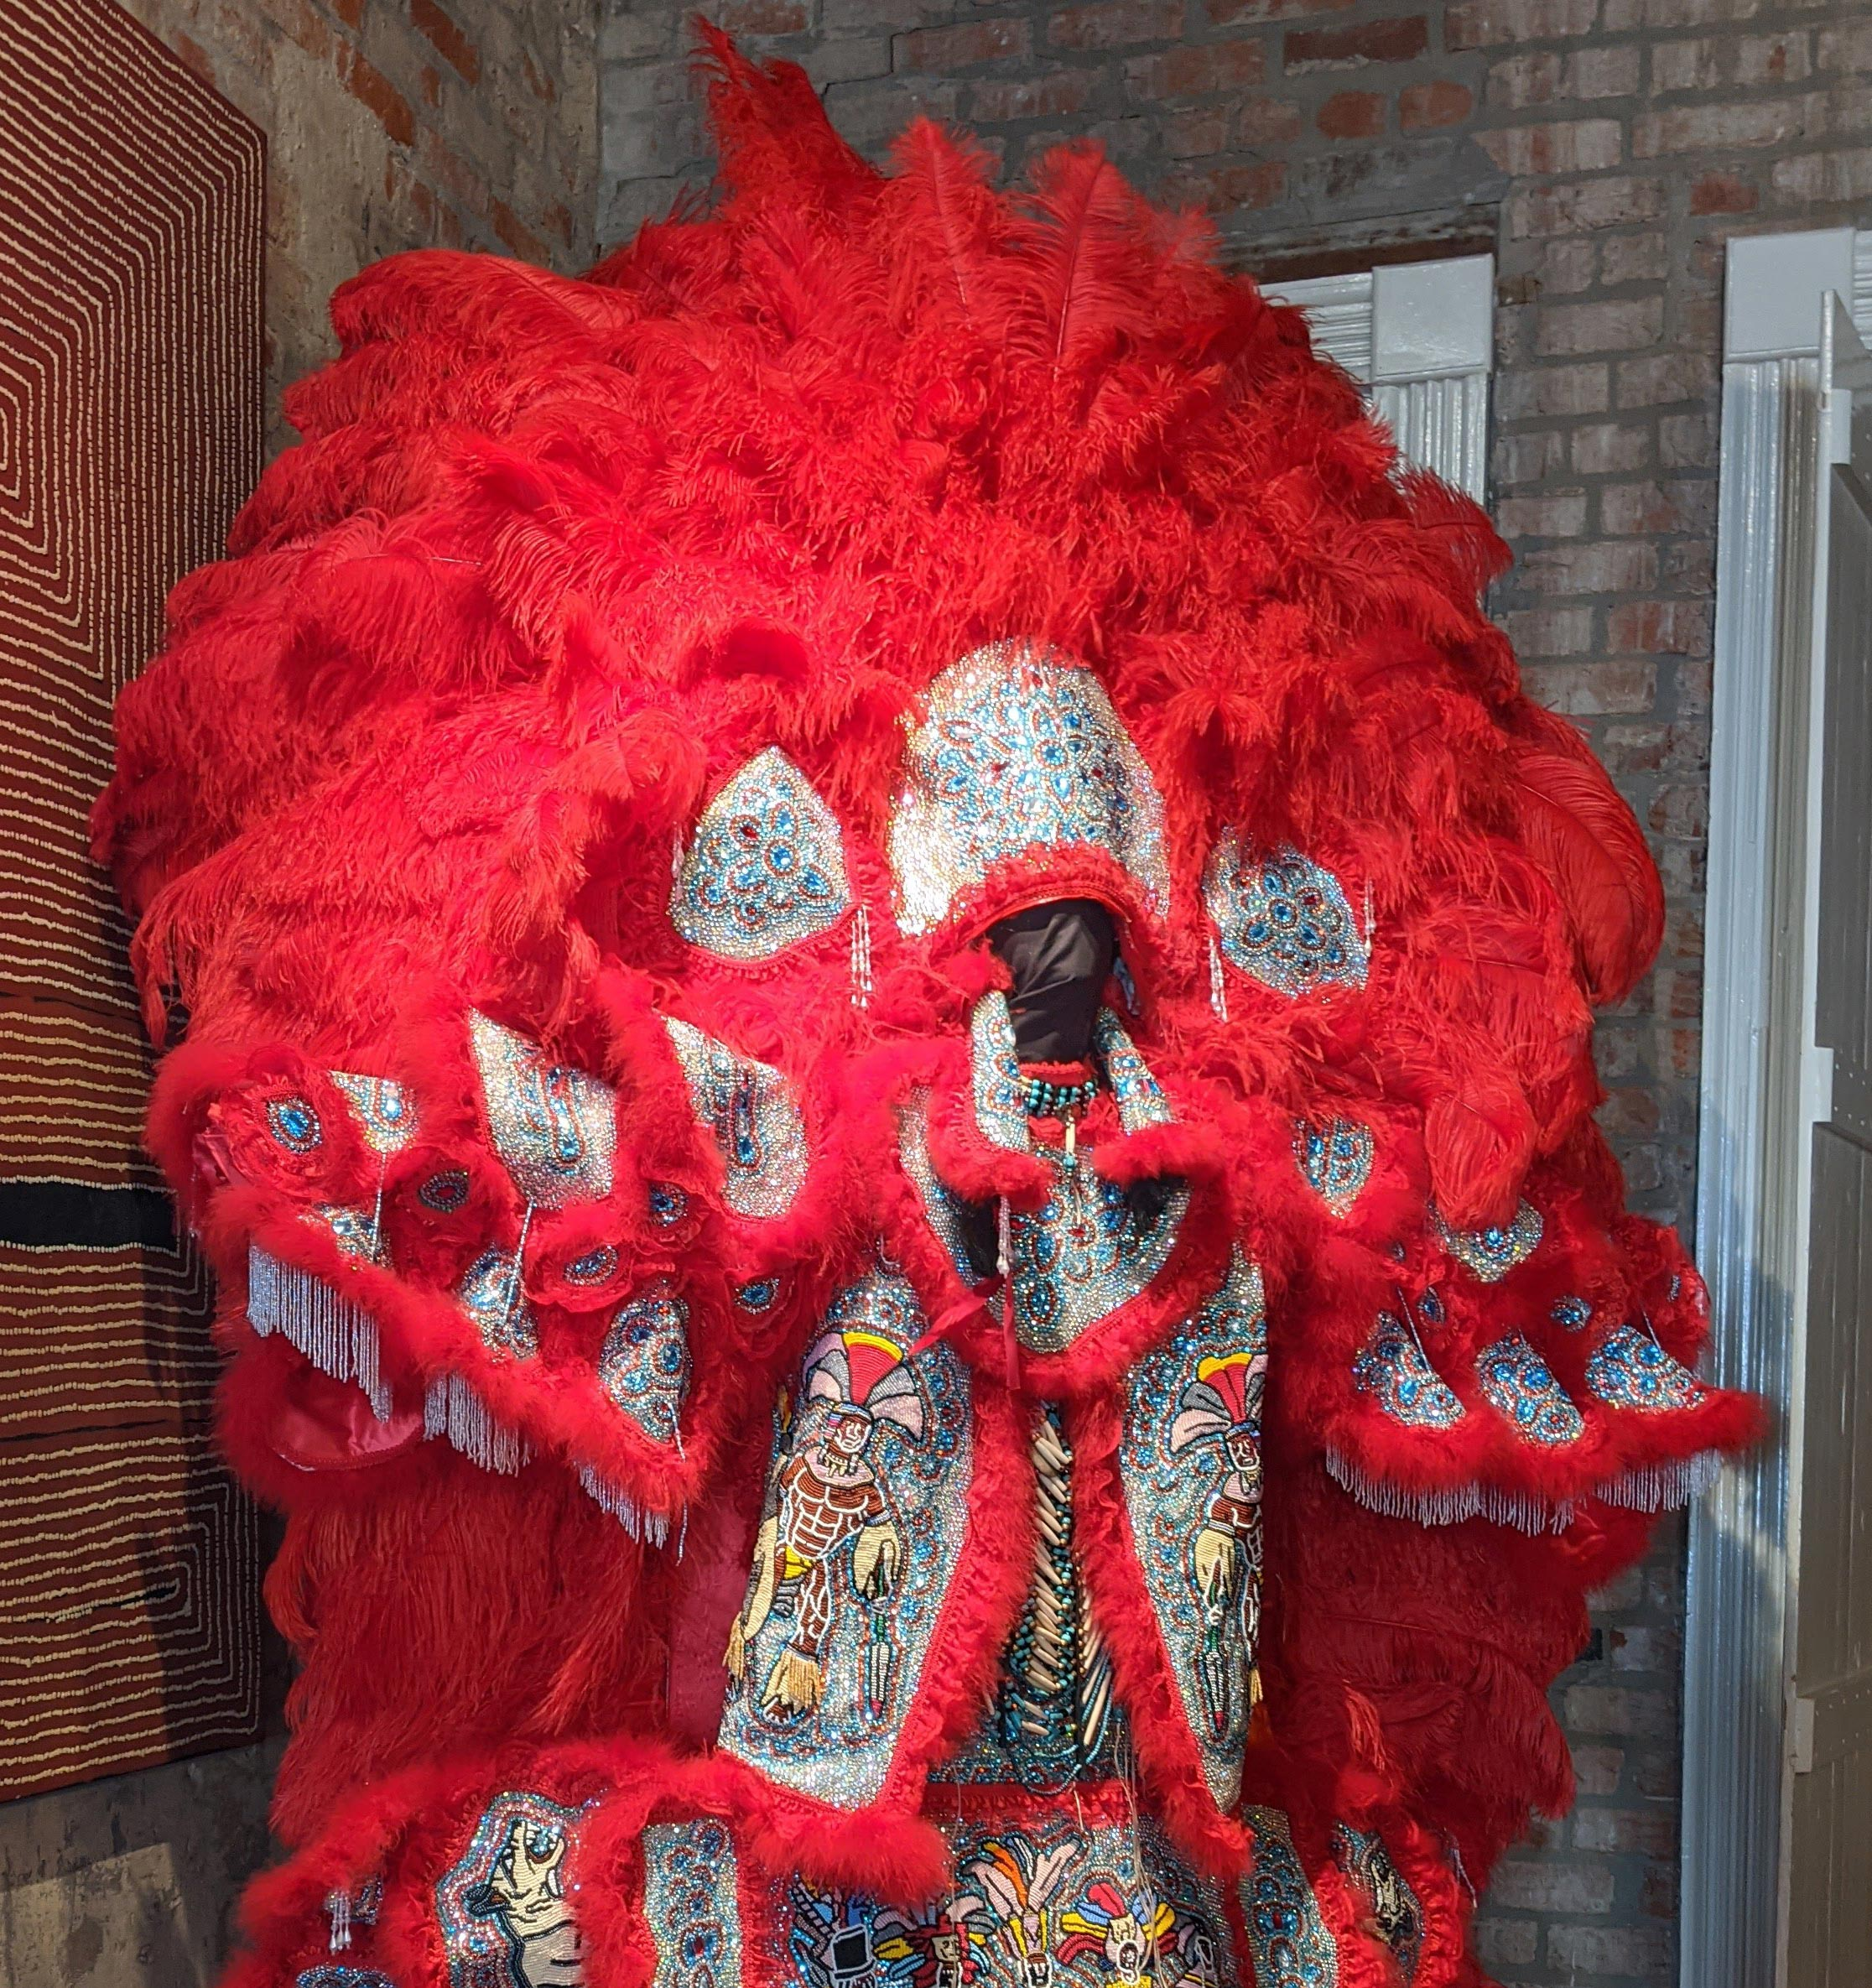 Mardi Gras Indian suit recently acquired by The Historic New Orleans Collection.